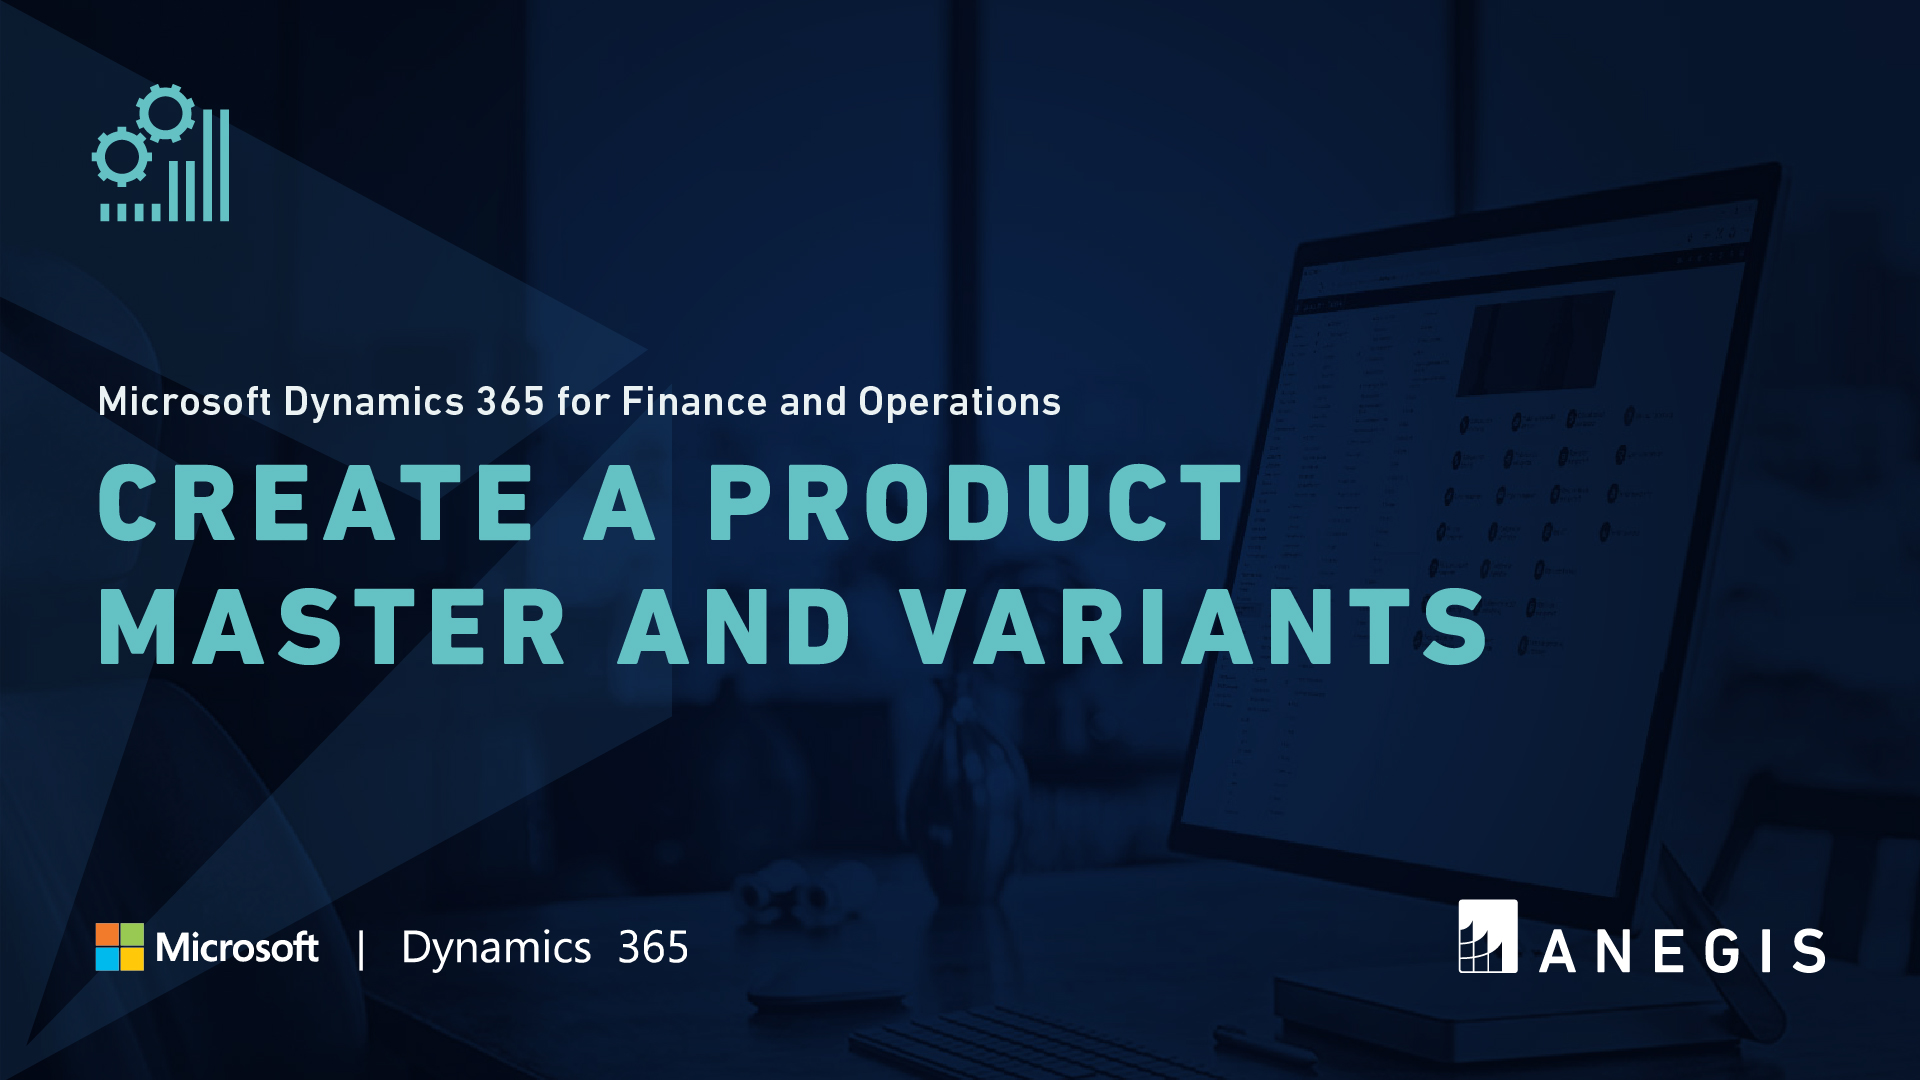 D365 F&O: Create a Product Master and Variants